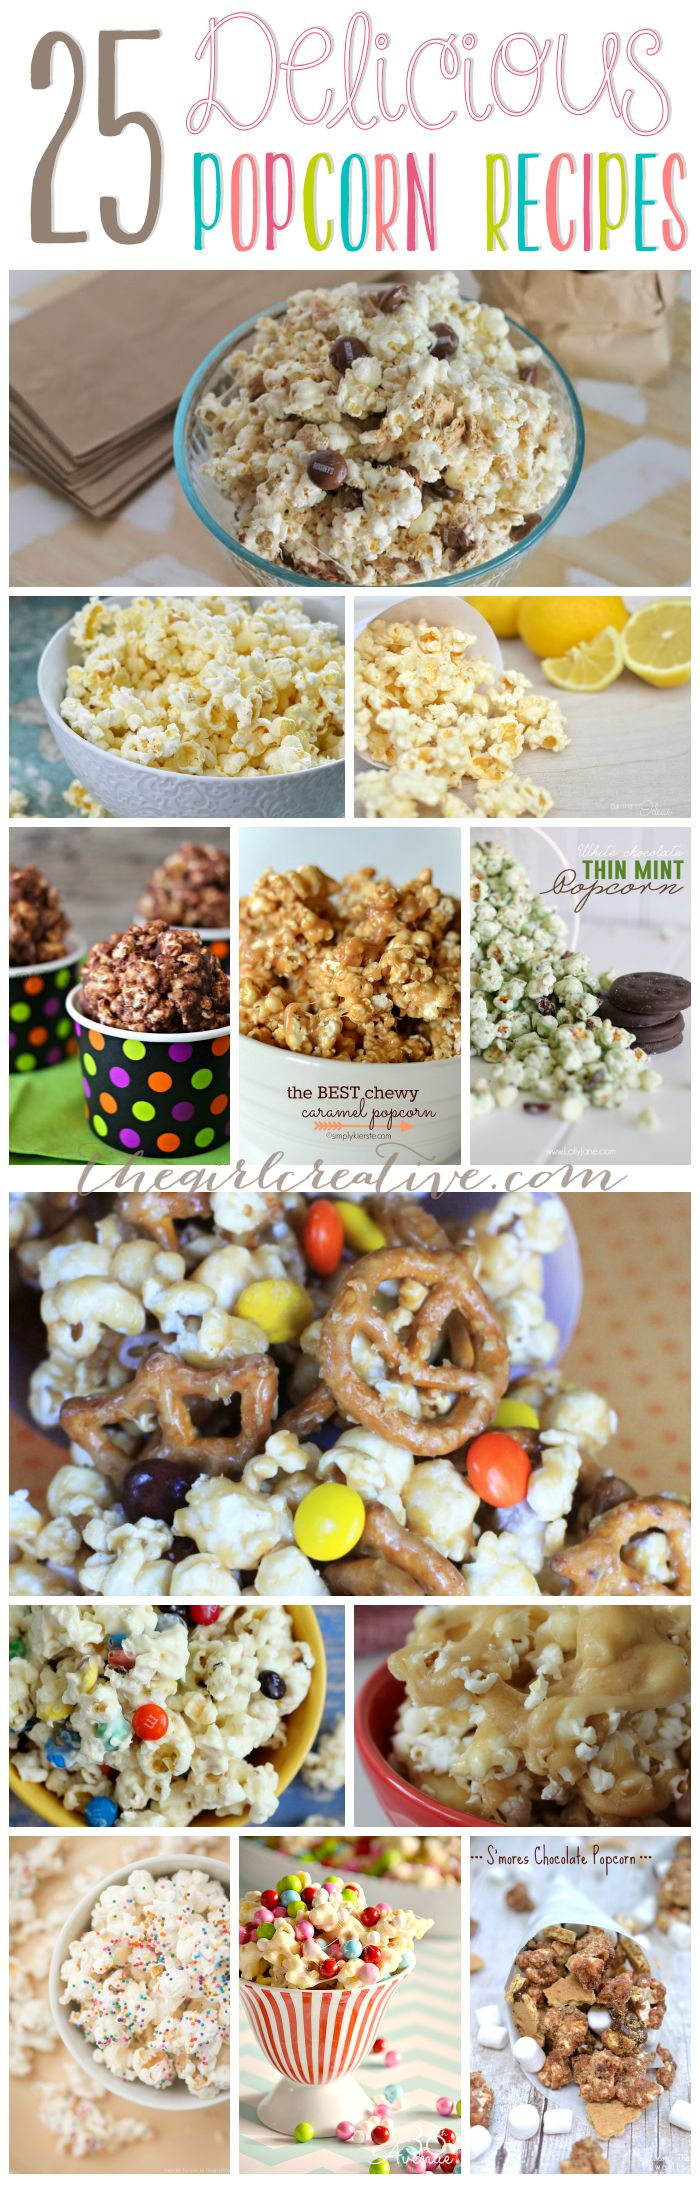 25 Delicious Popcorn Recipes